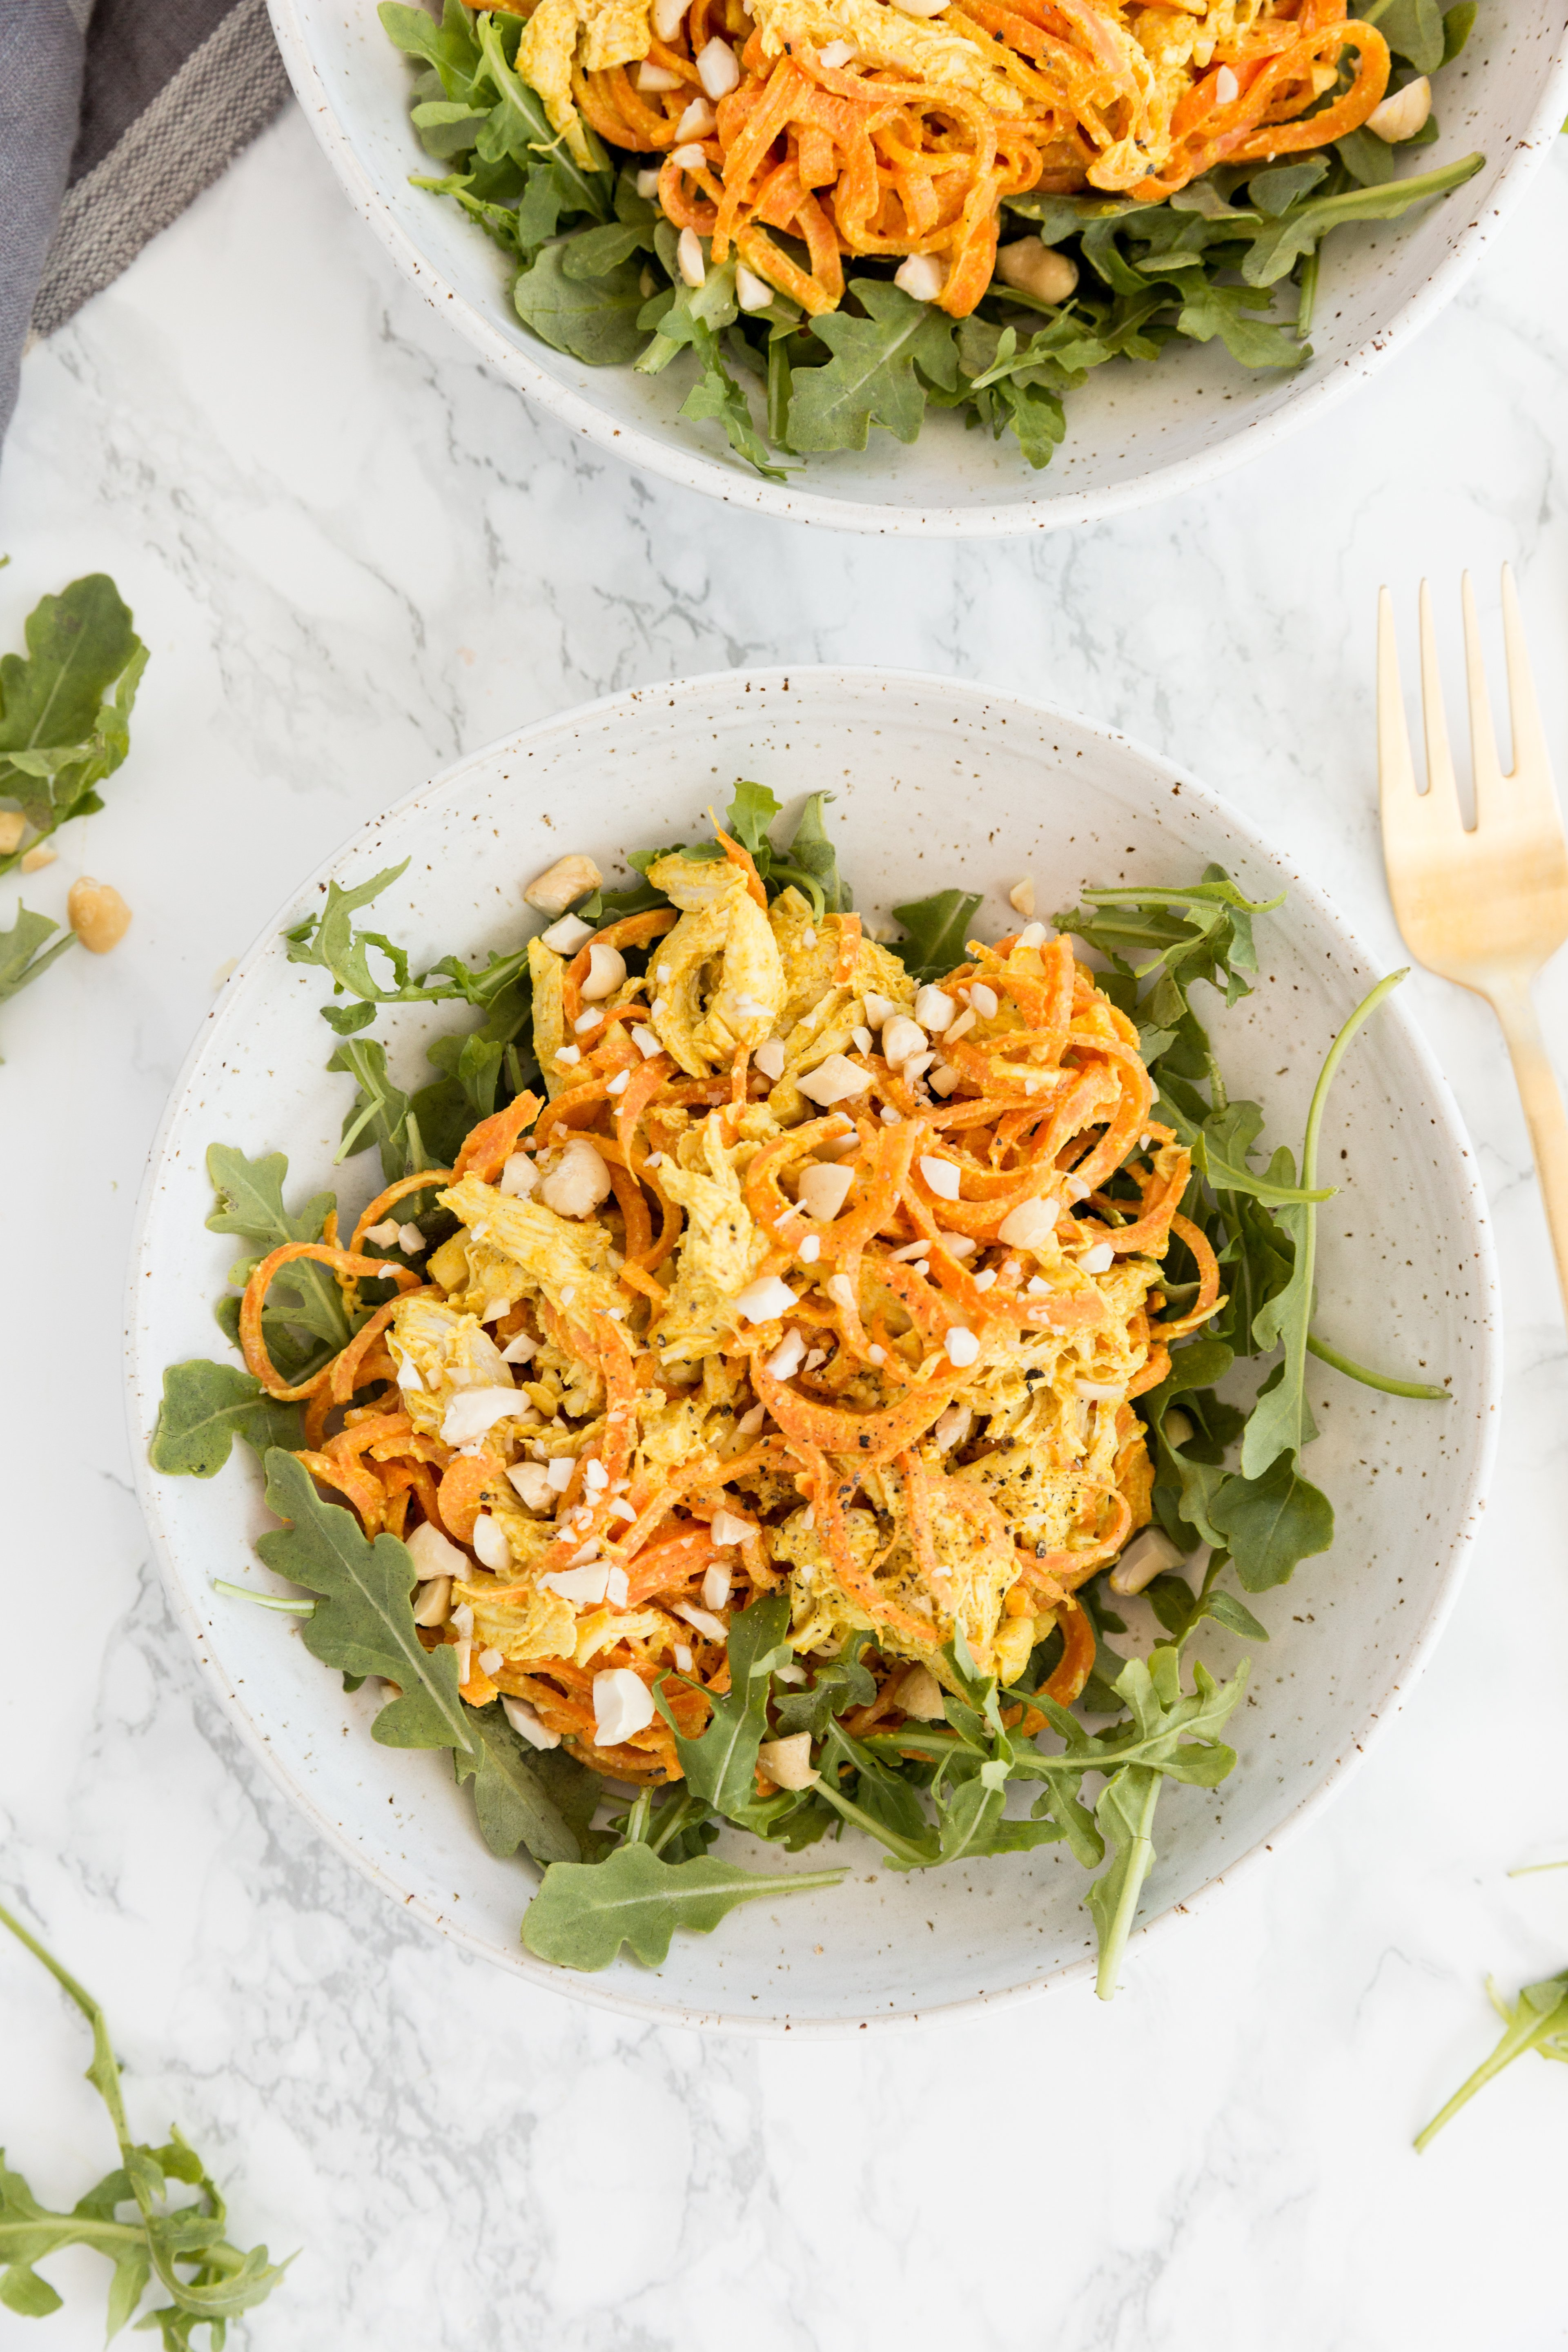 Curried Tahini Cashew Chicken and Carrot Salad